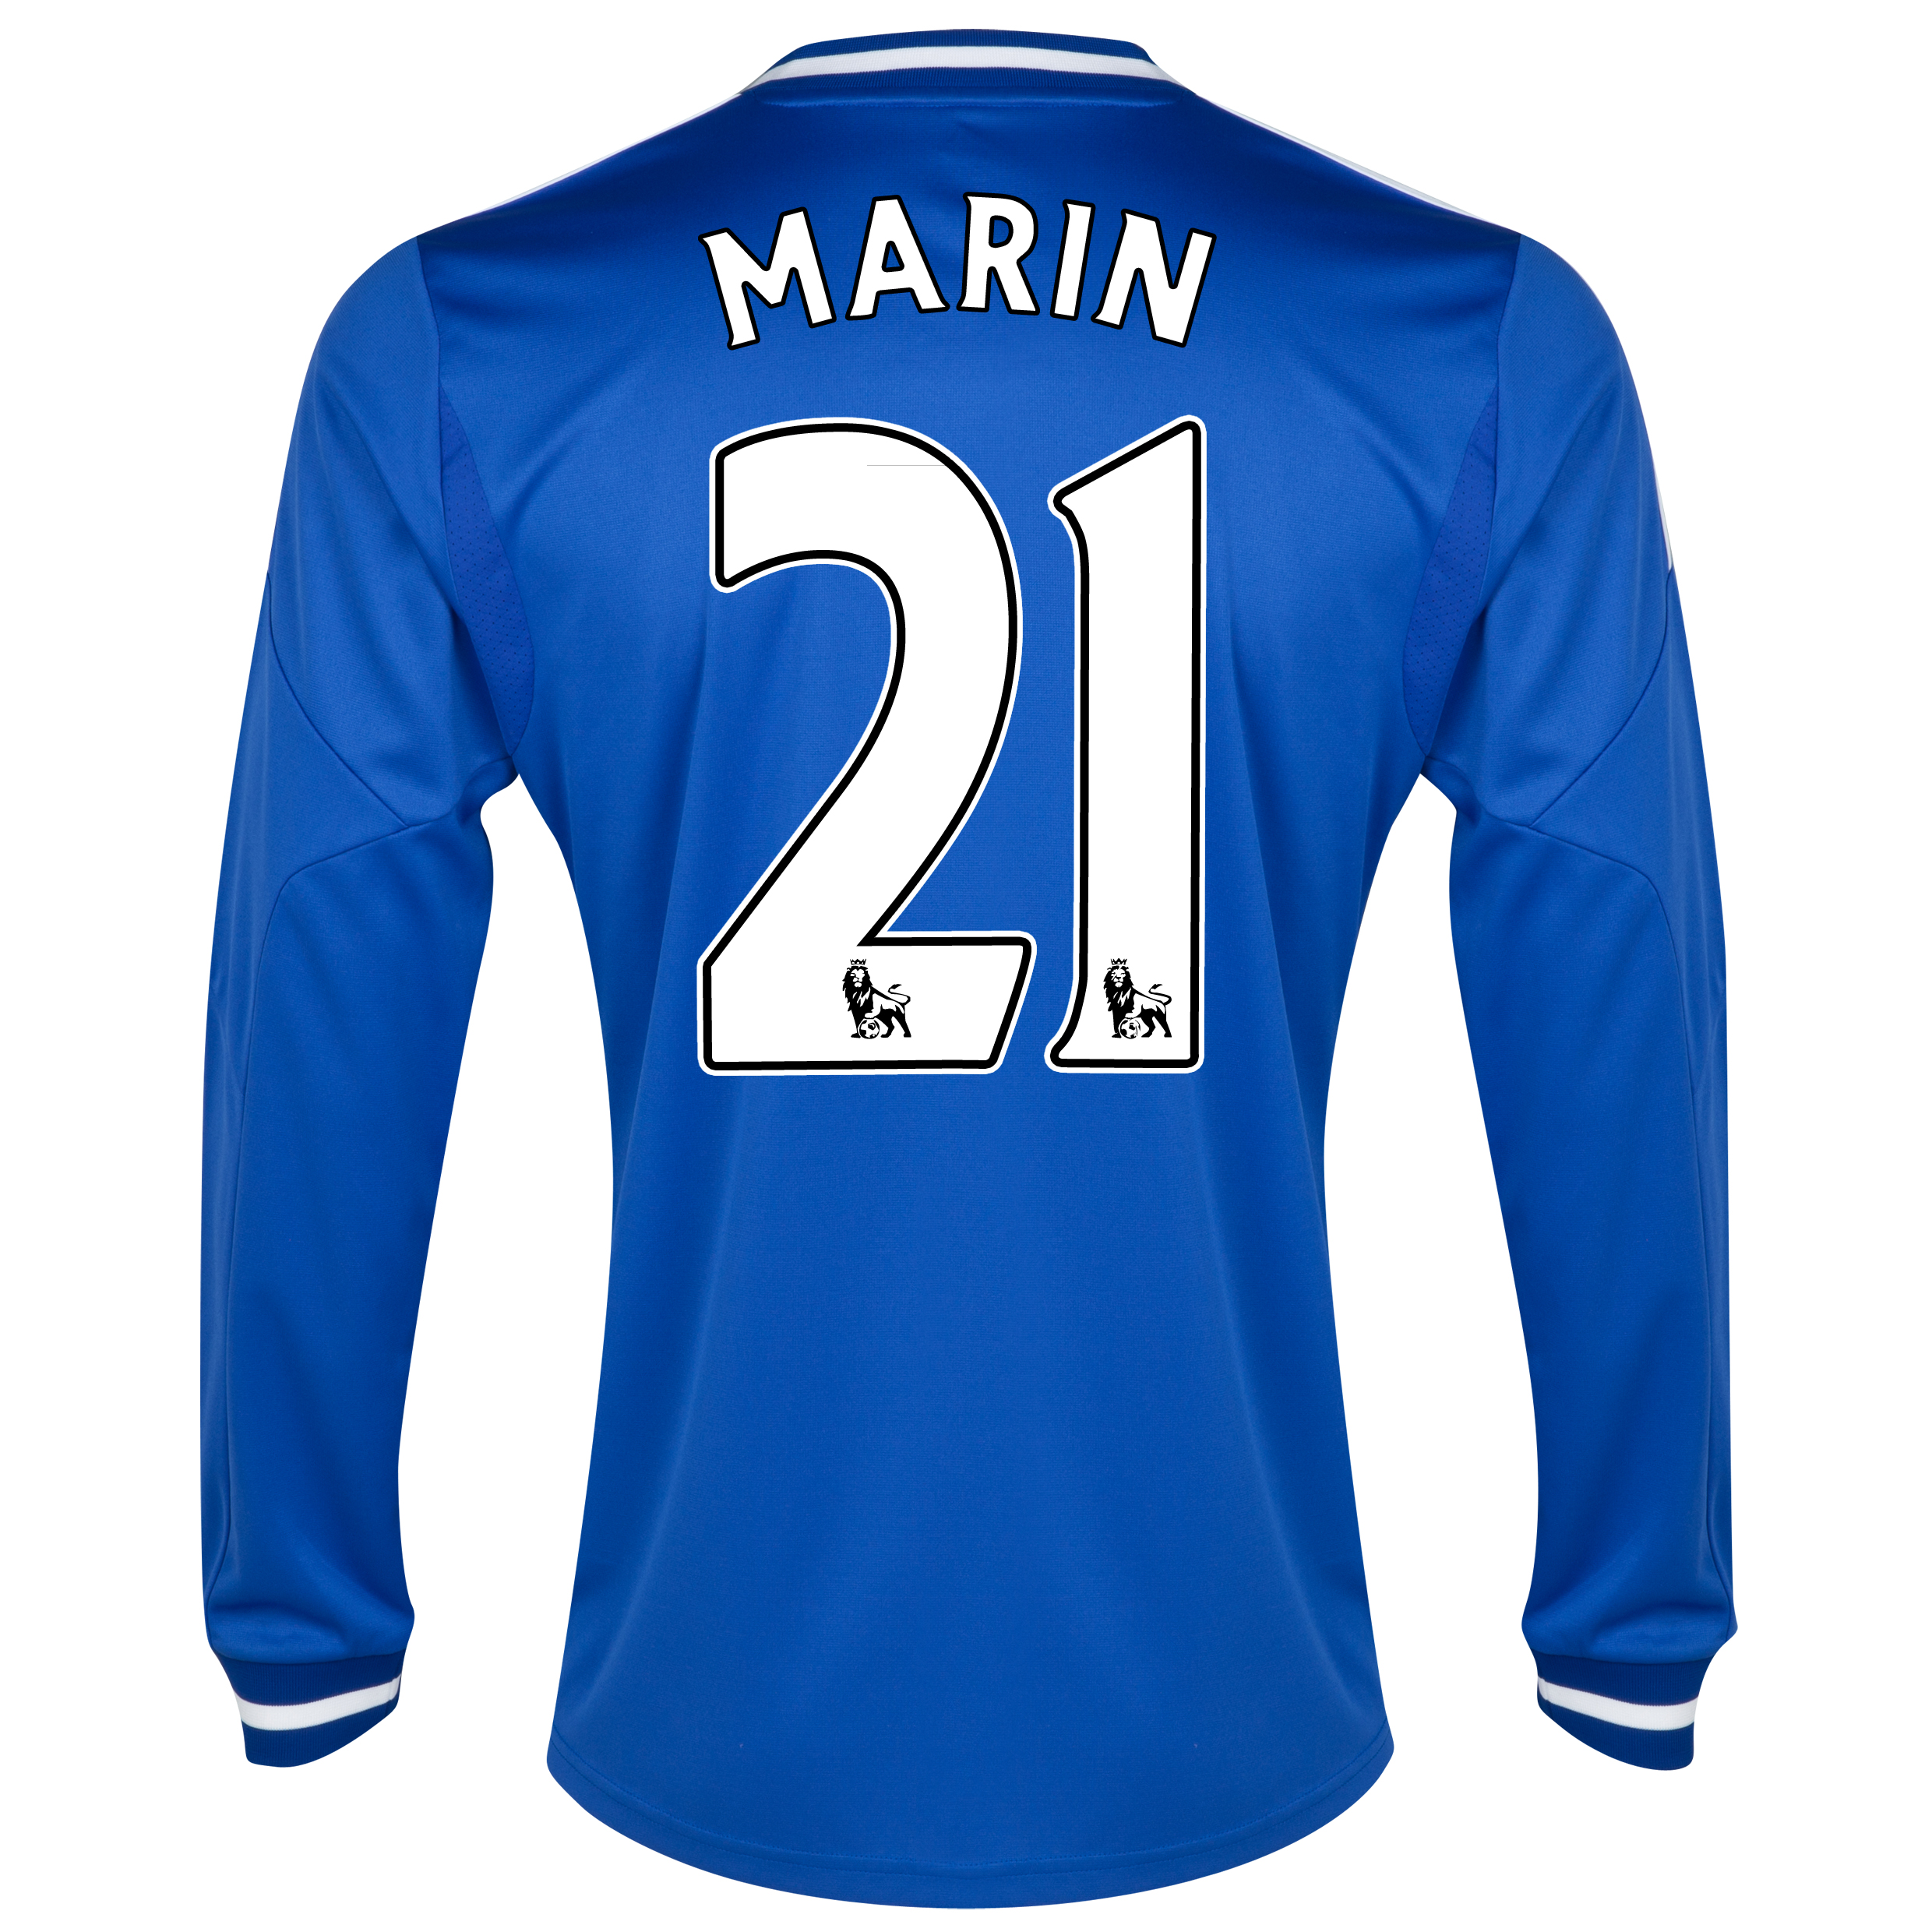 Chelsea Home Shirt 2013/14 - Long Sleeve - Kids with Marin 21 printing